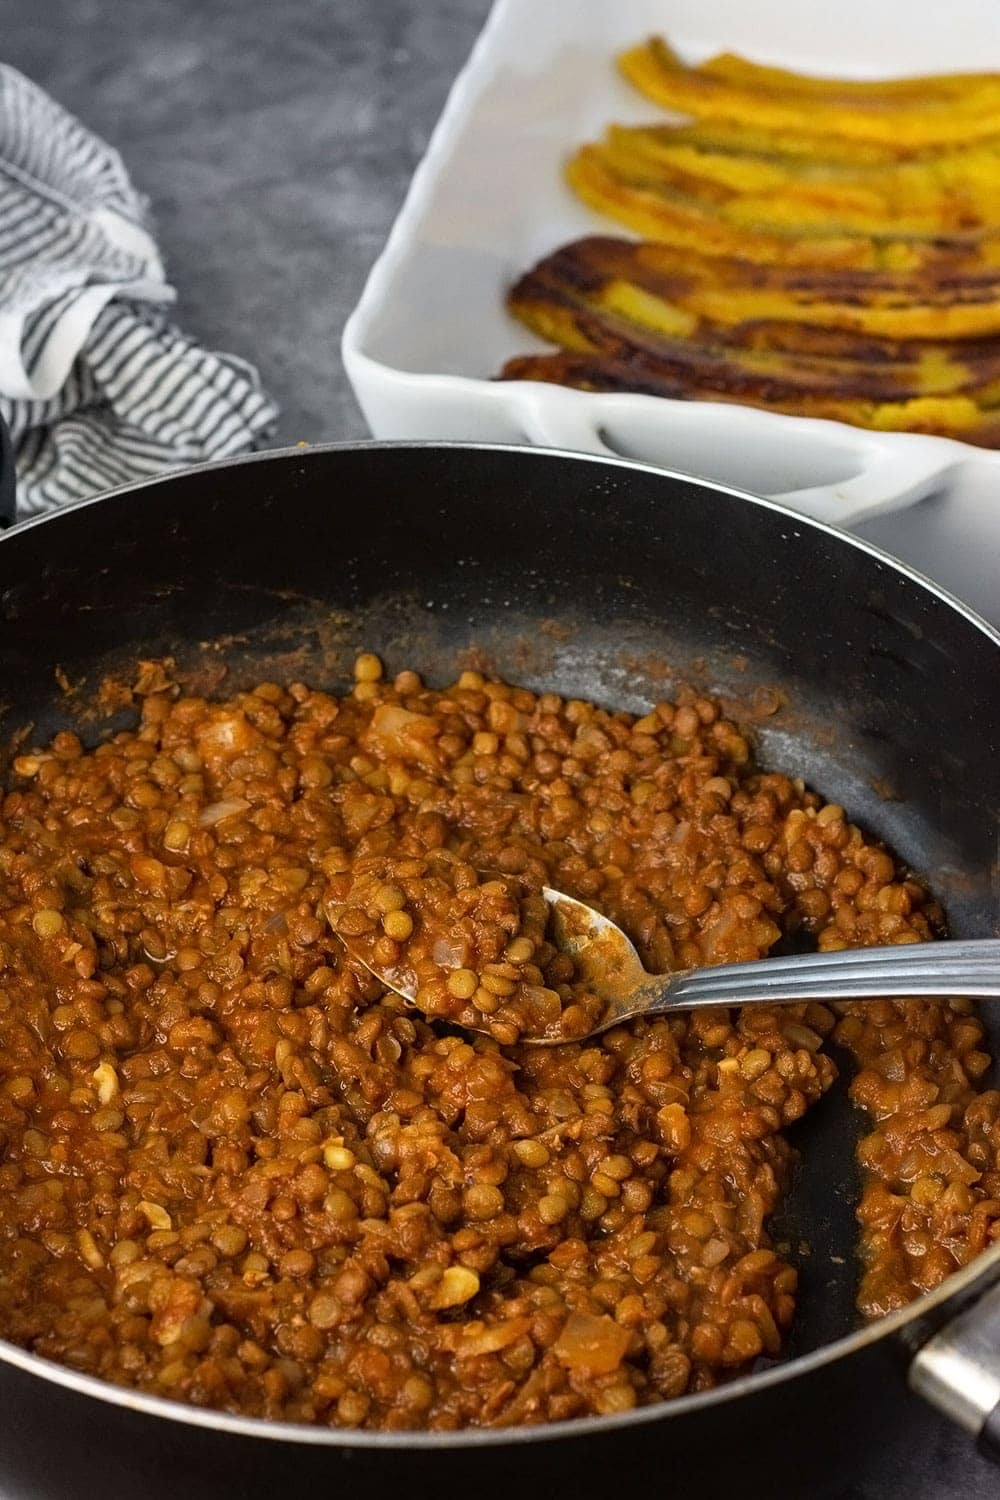 Lentils for vegan pastelon in a black skillet